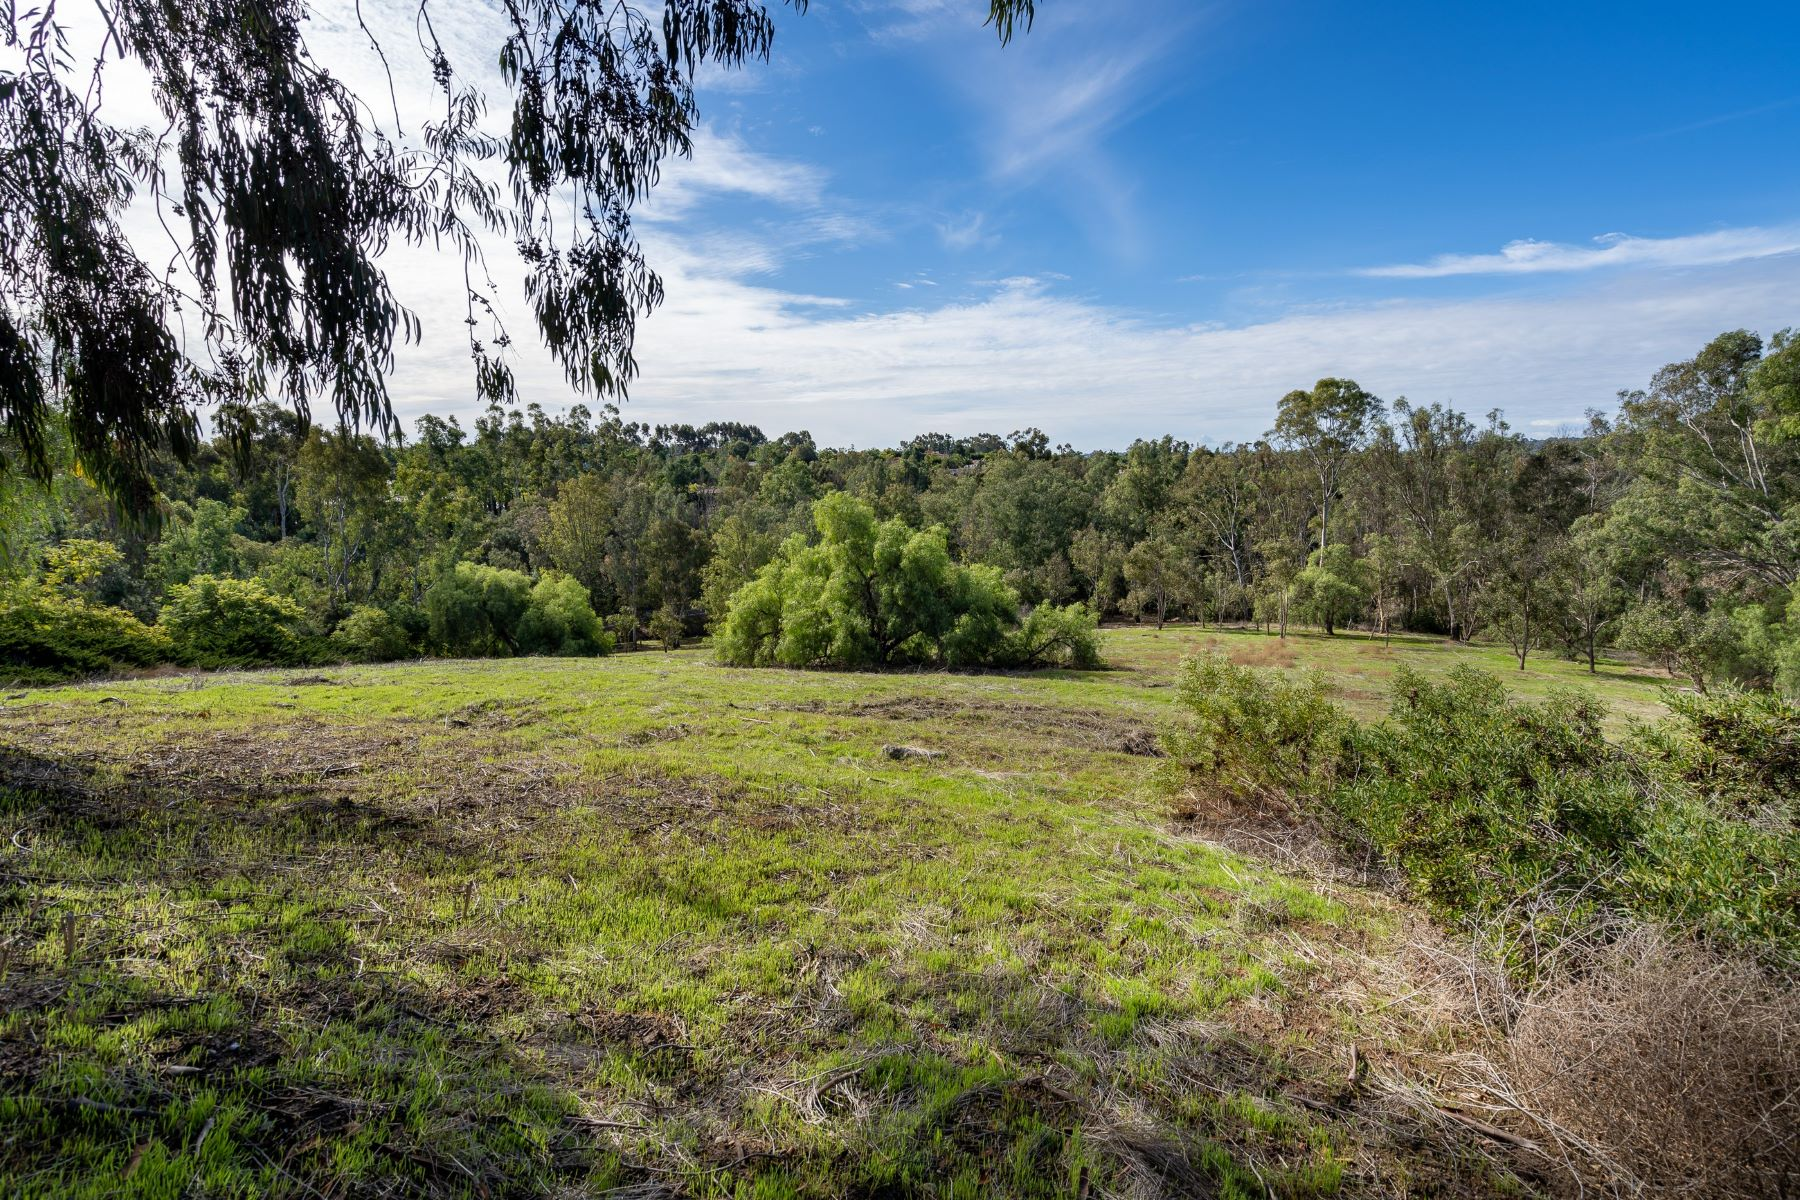 Land for Sale at Camino Saucito Lot 73 Rancho Santa Fe, California 92067 United States